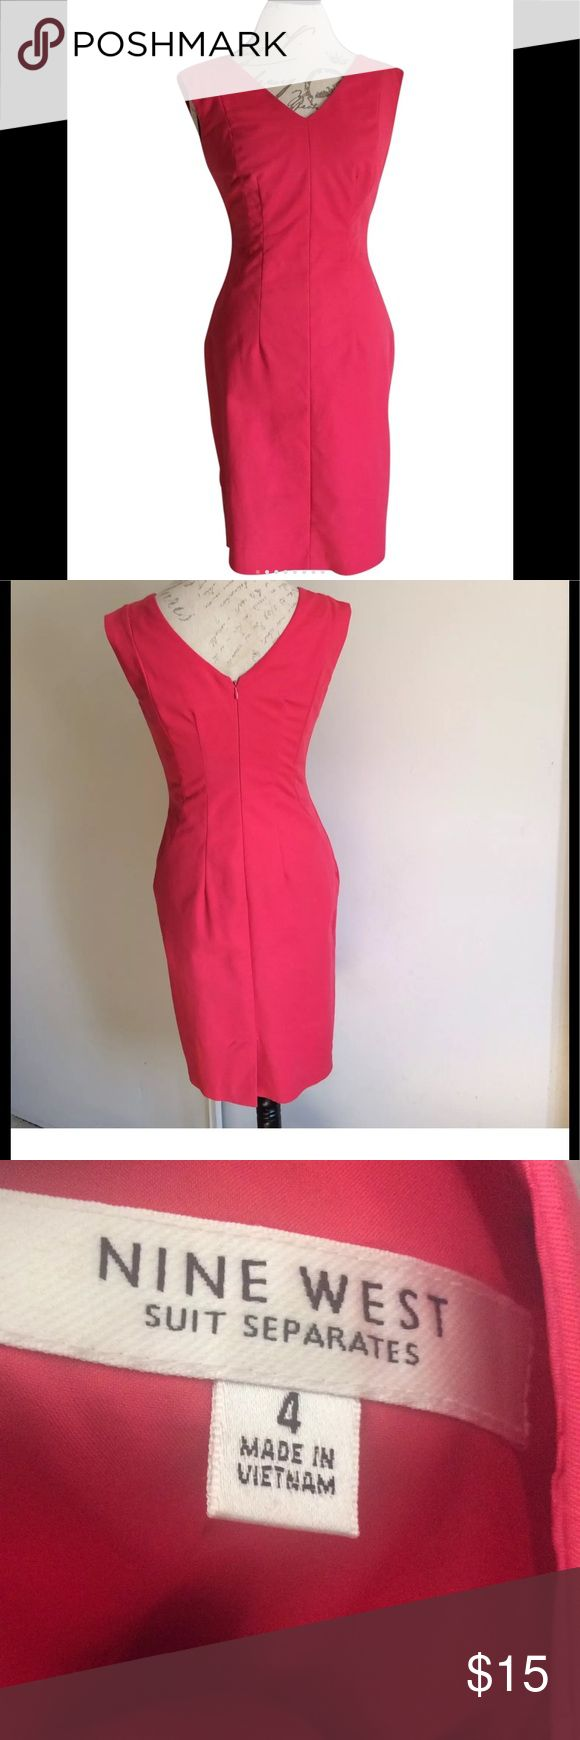 Nine West Dress Size 12 Pink Suit Separates Nine West Women's Dress Size 12 Pink Suit Separates V Neck Pencil Work, Casual   Small white stains located close to Armpit  Small Stain located front bottom dress. No rips. Overall Dress is still good Condition to wear   Measurements laying flat  Armpit to Armpit 34 inches  Waist 30 inches  Top to bottom 36 inches   B5 9.9 Nine West Dresses Midi